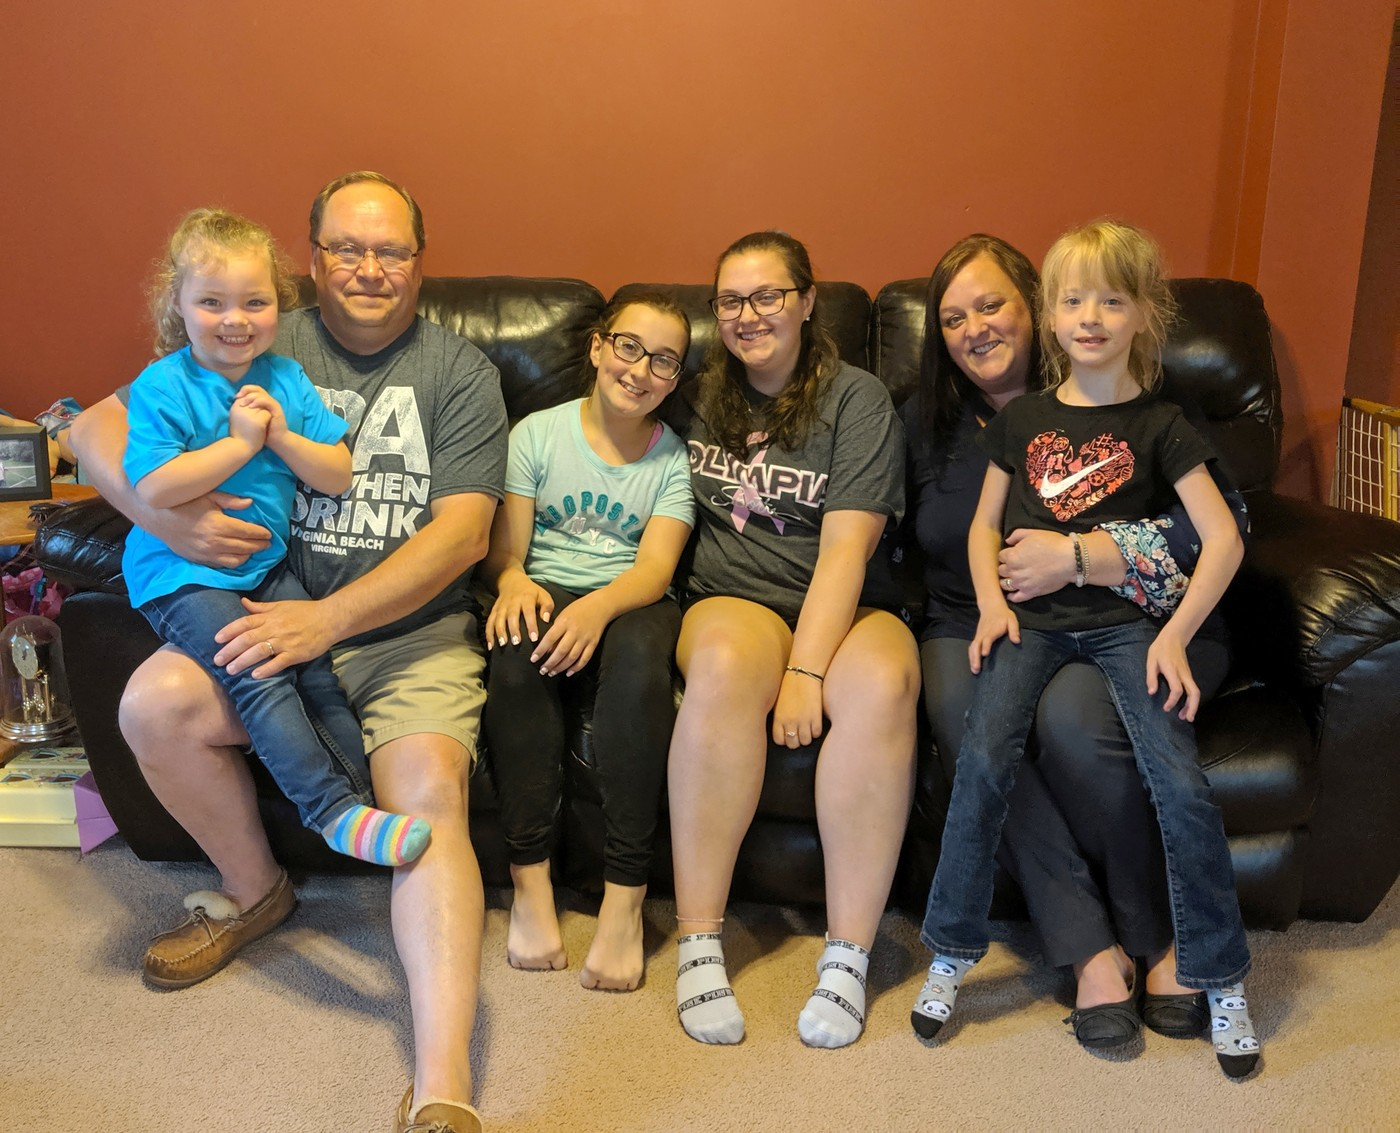 Meet the St. Lawrence County family who's taken in over 100 foster children